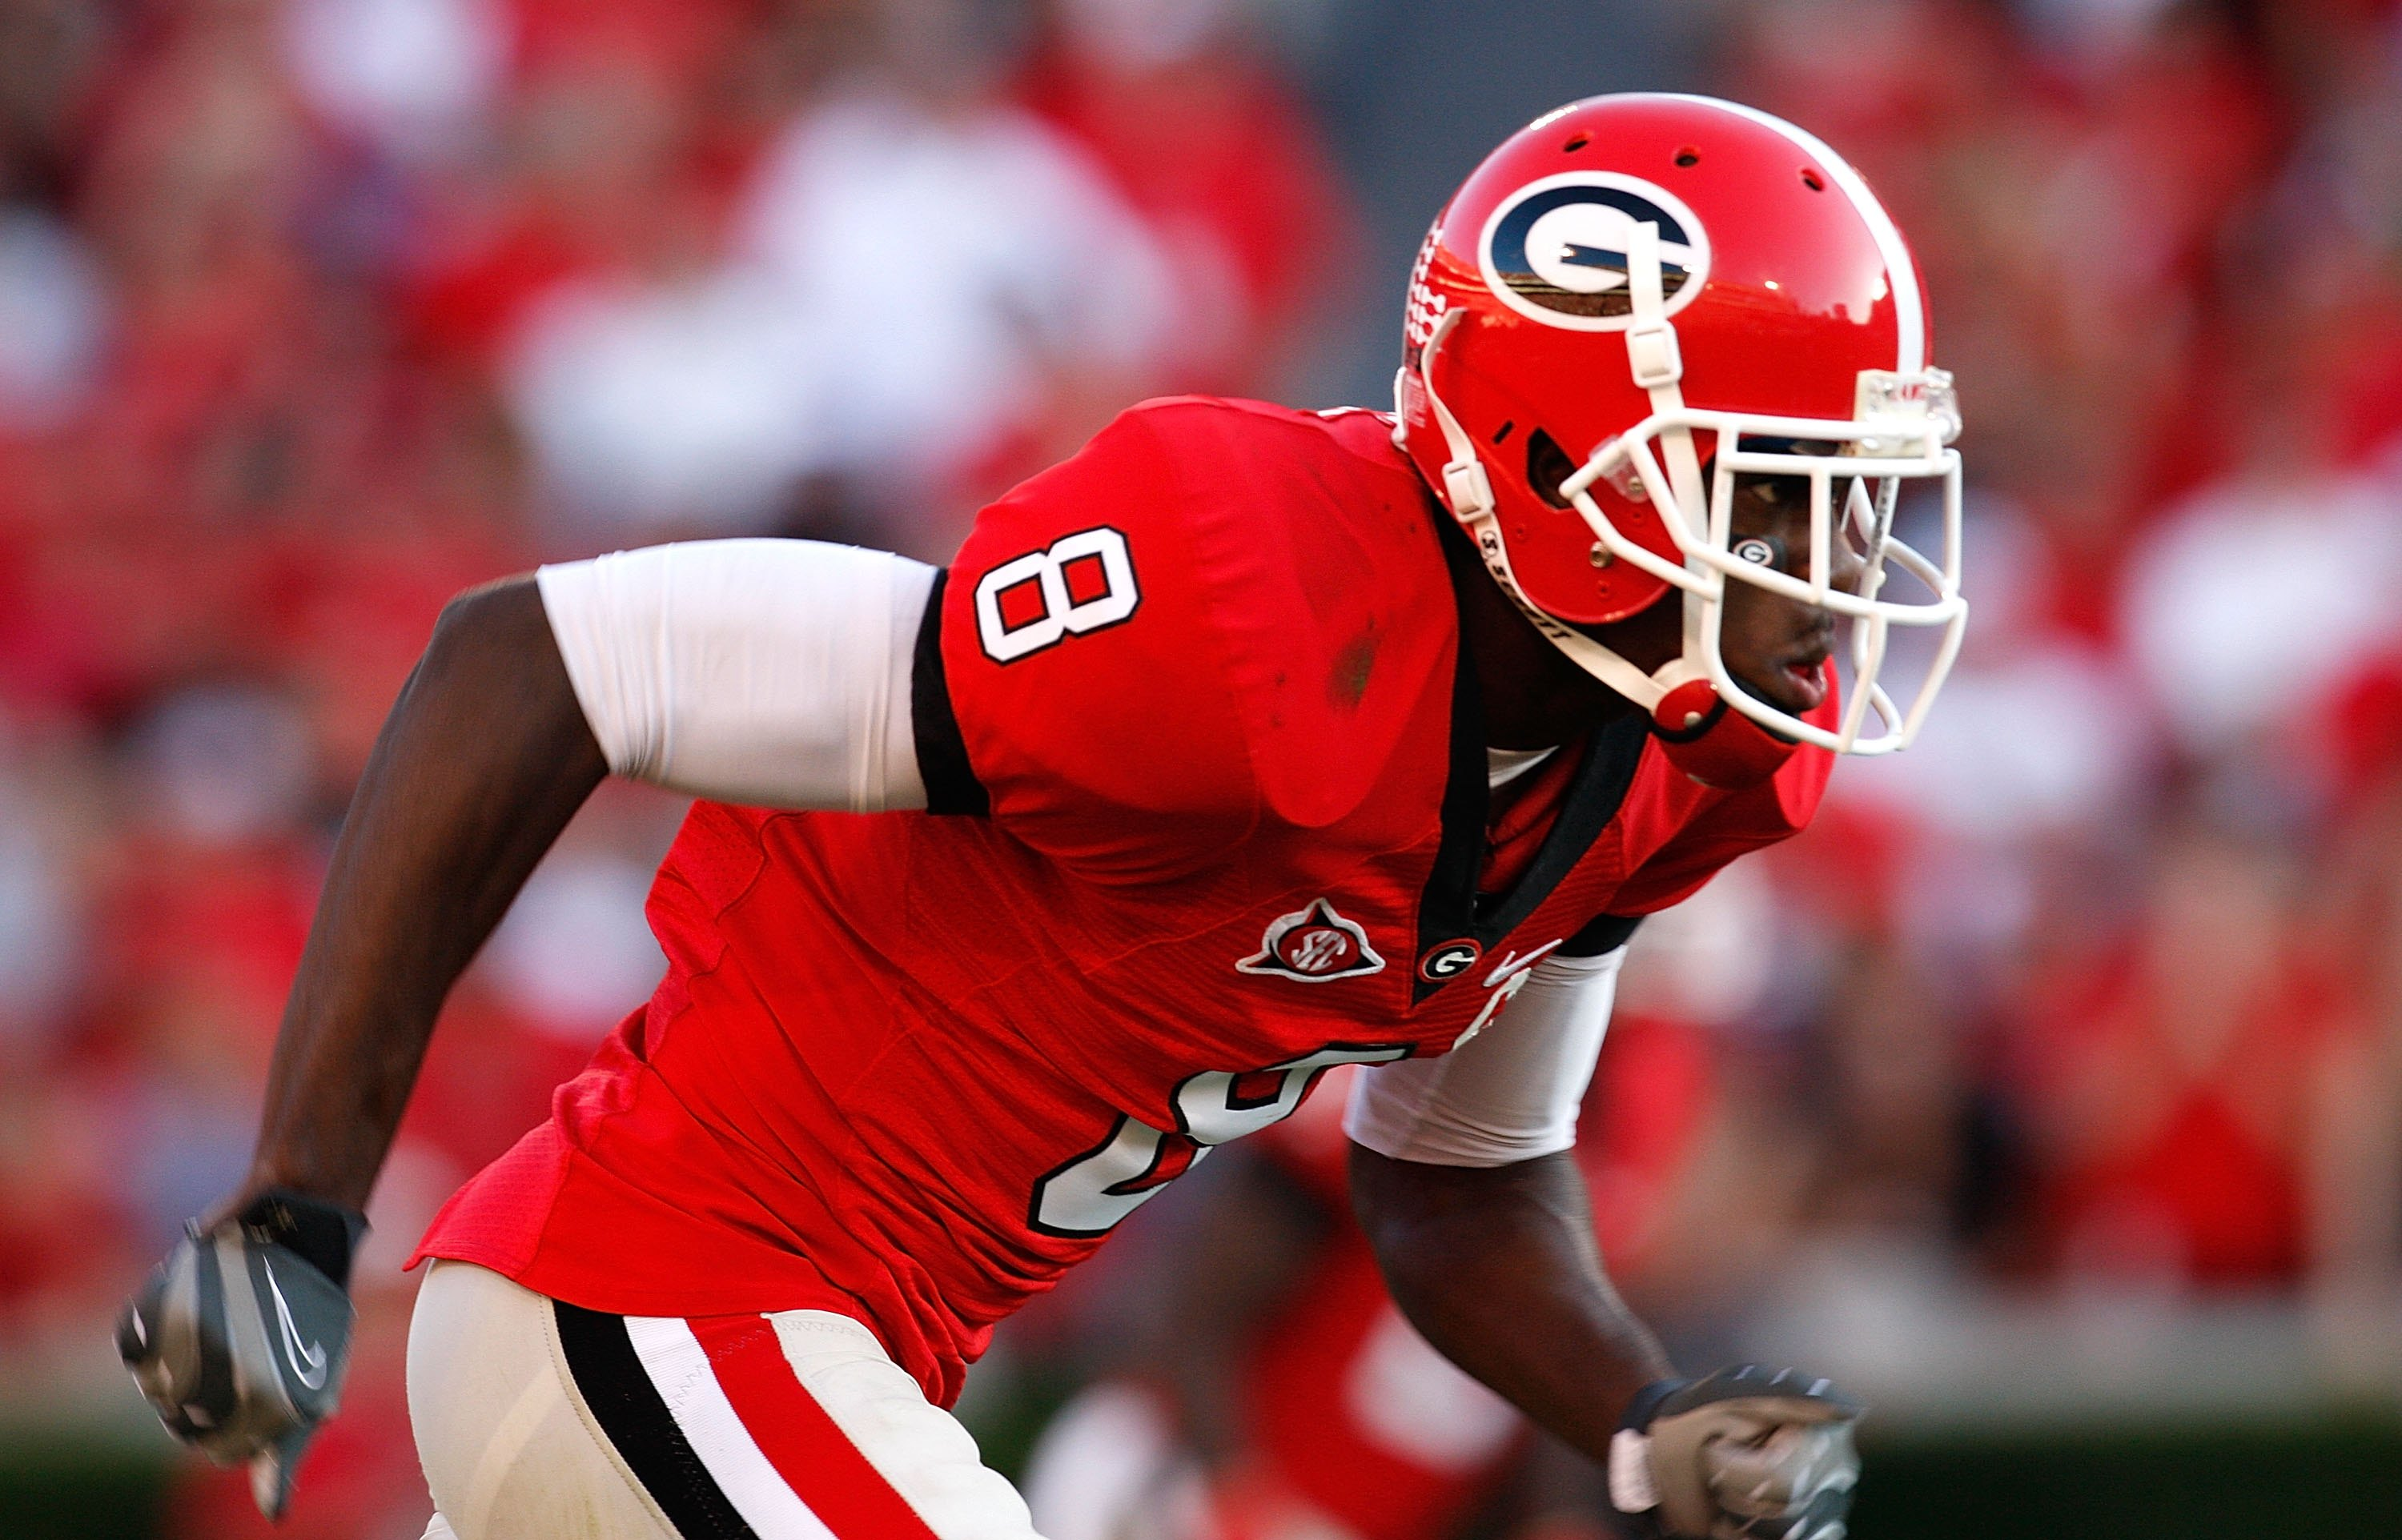 ATHENS, GA - OCTOBER 03:  A.J. Green #8 of the Georgia Bulldogs against the Louisiana State University Tigers at Sanford Stadium on October 3, 2009 in Athens, Georgia.  (Photo by Kevin C. Cox/Getty Images)